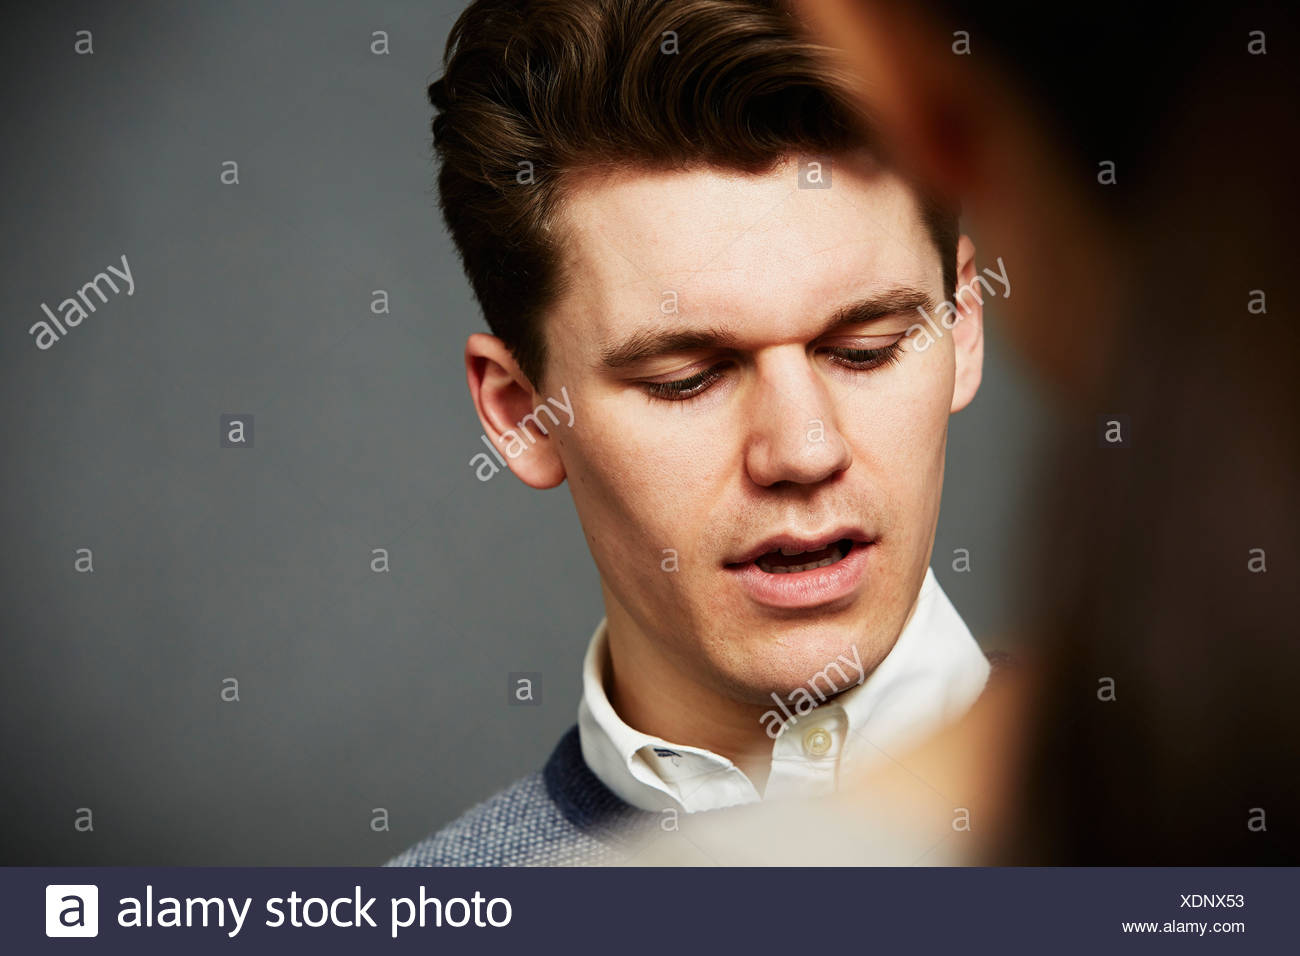 Candid portrait of young man close up Photo Stock